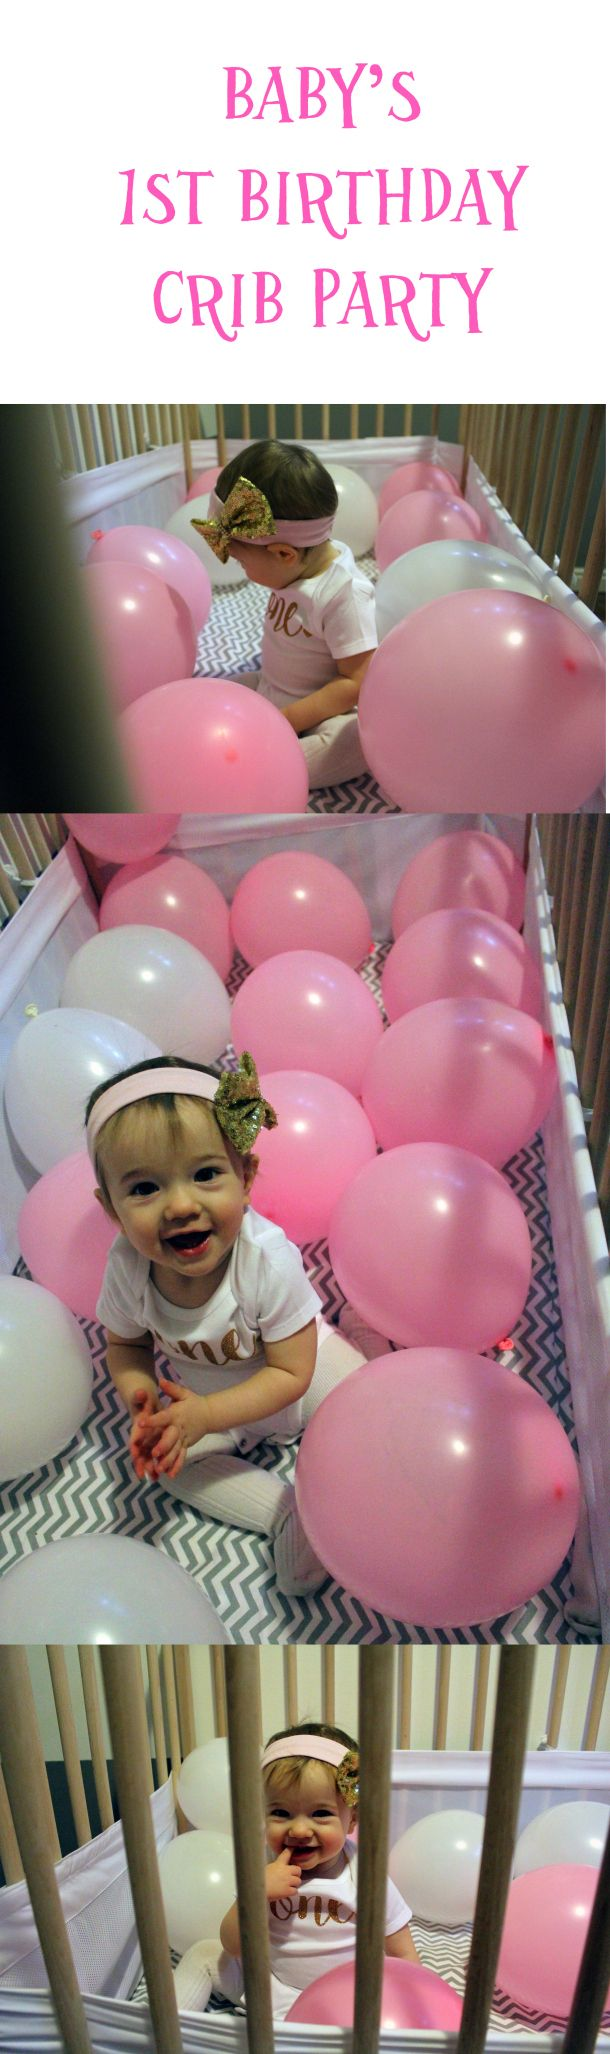 For Zoe's first birthday, we filled her crib with balloons for a cute, fun-filled birthday party.